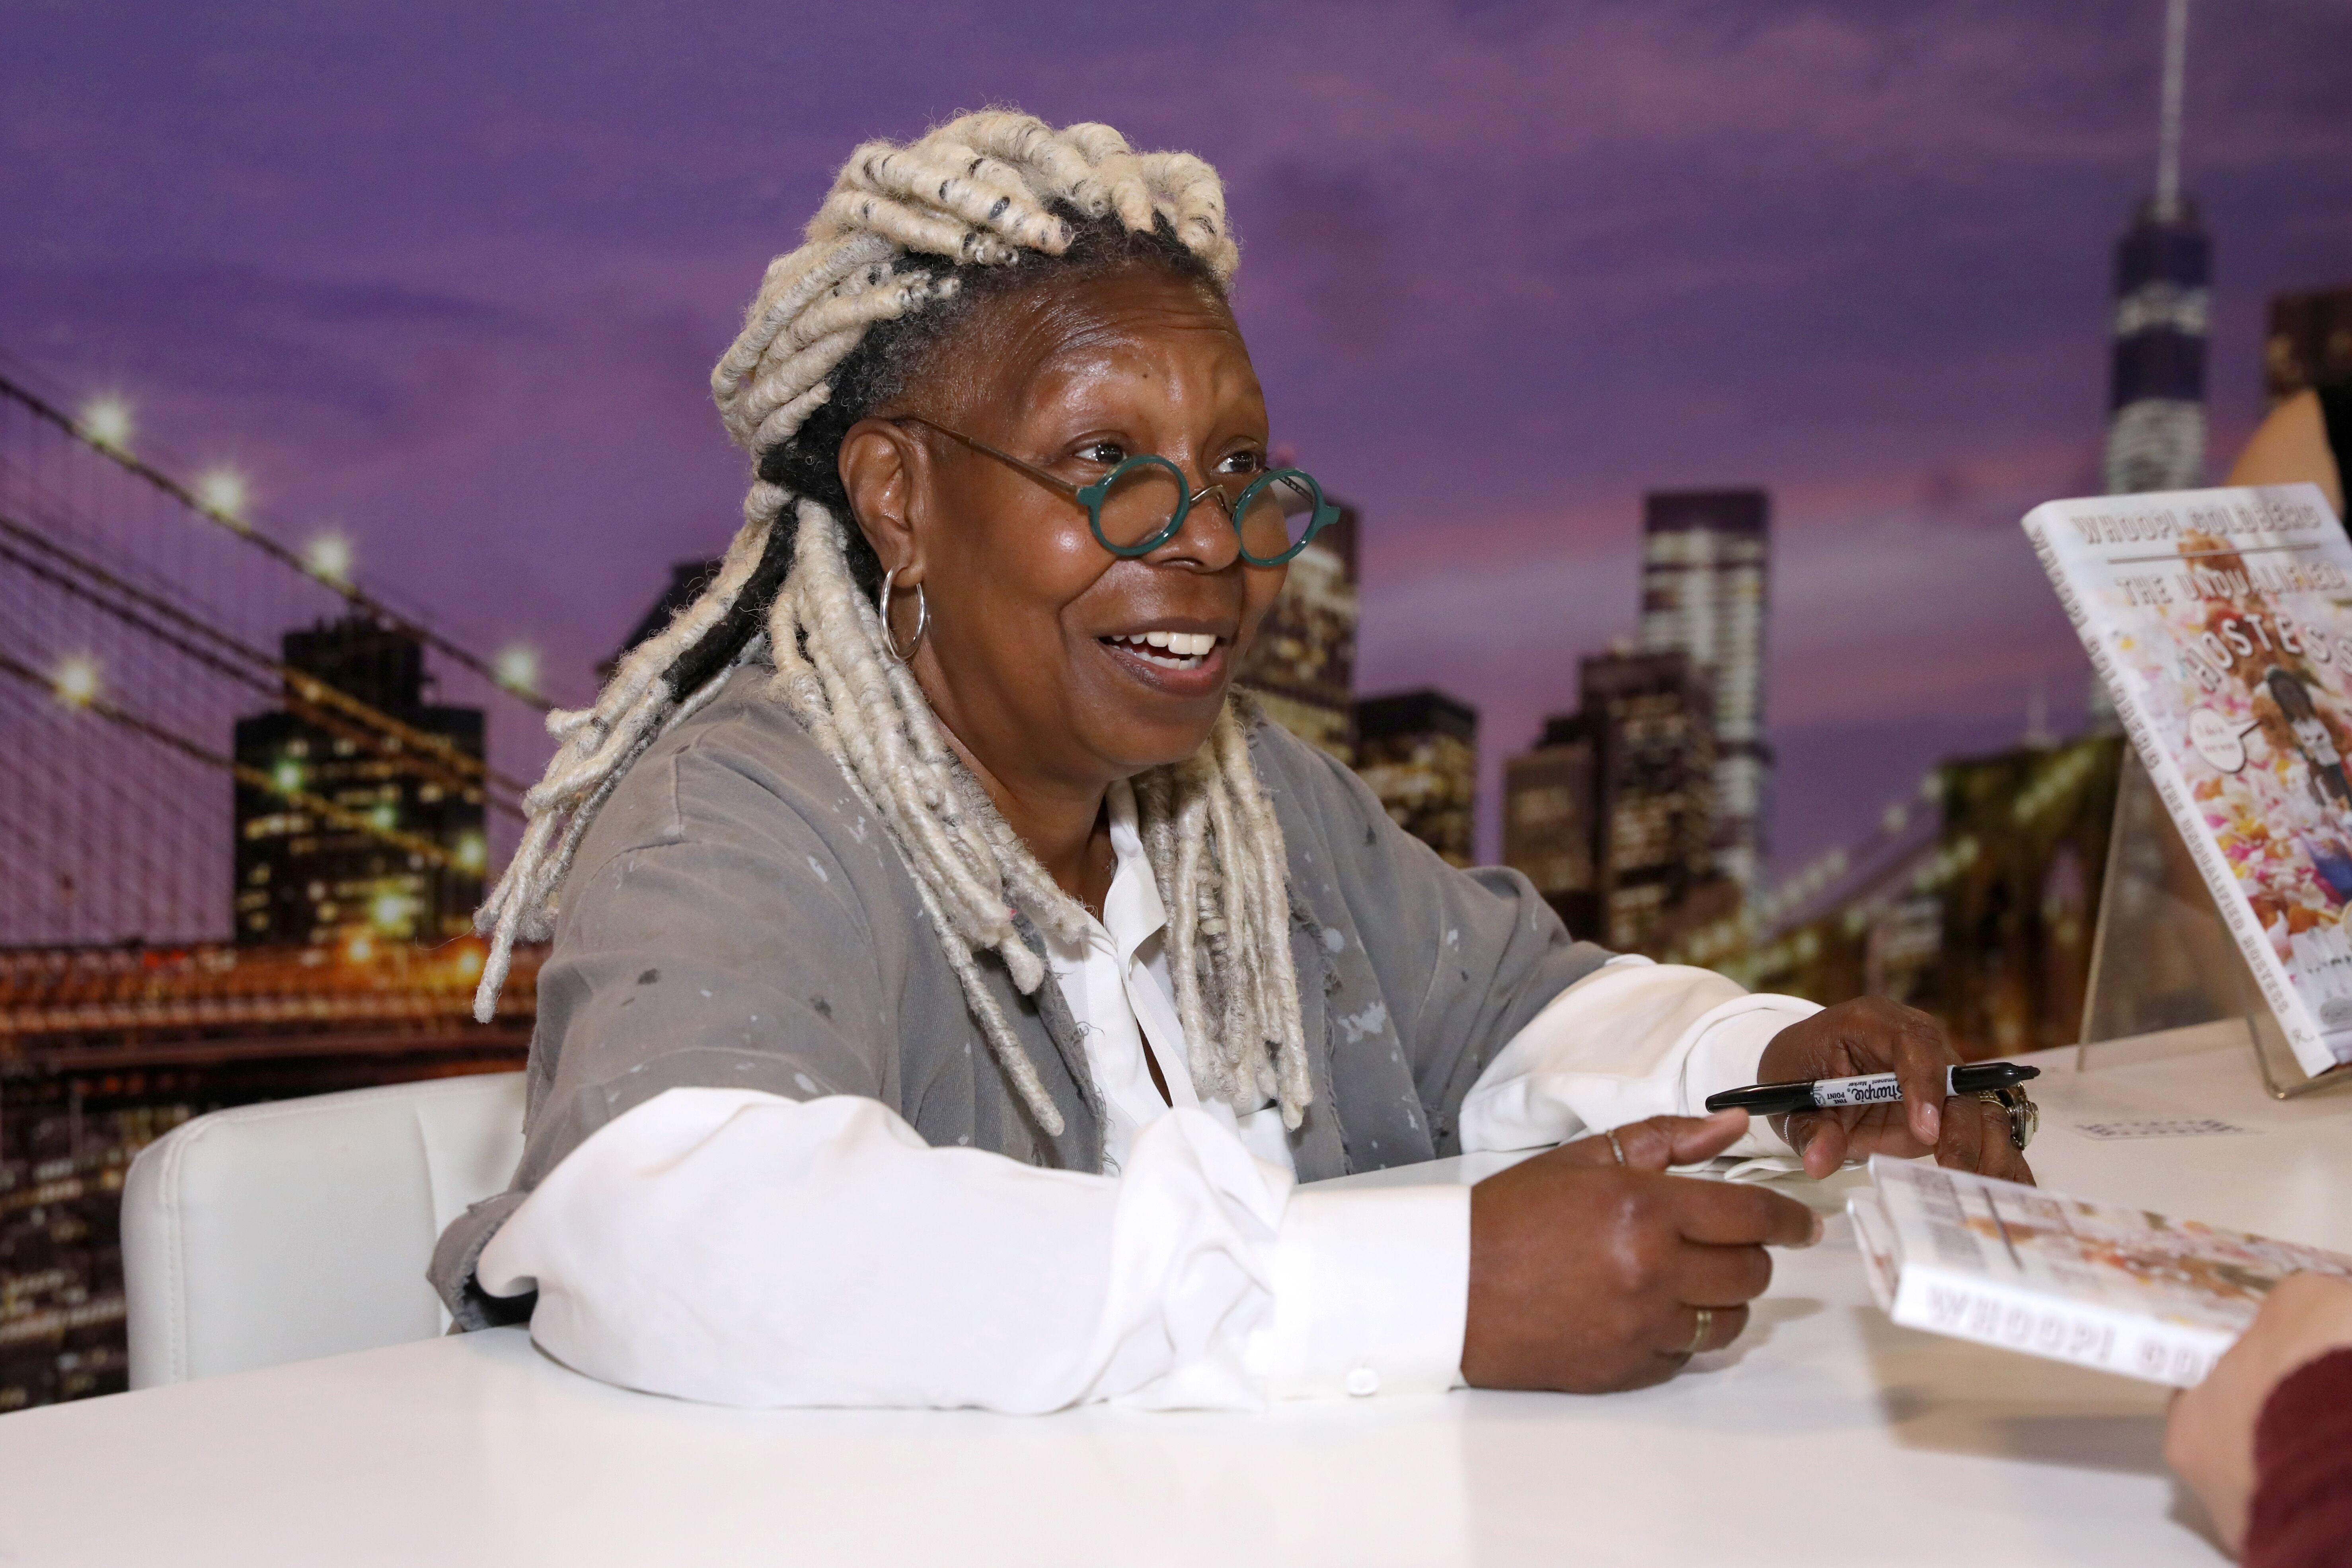 Whoopi Goldberg participates in book signing on October 13, 2019 in New York CIty | Source: Getty Images